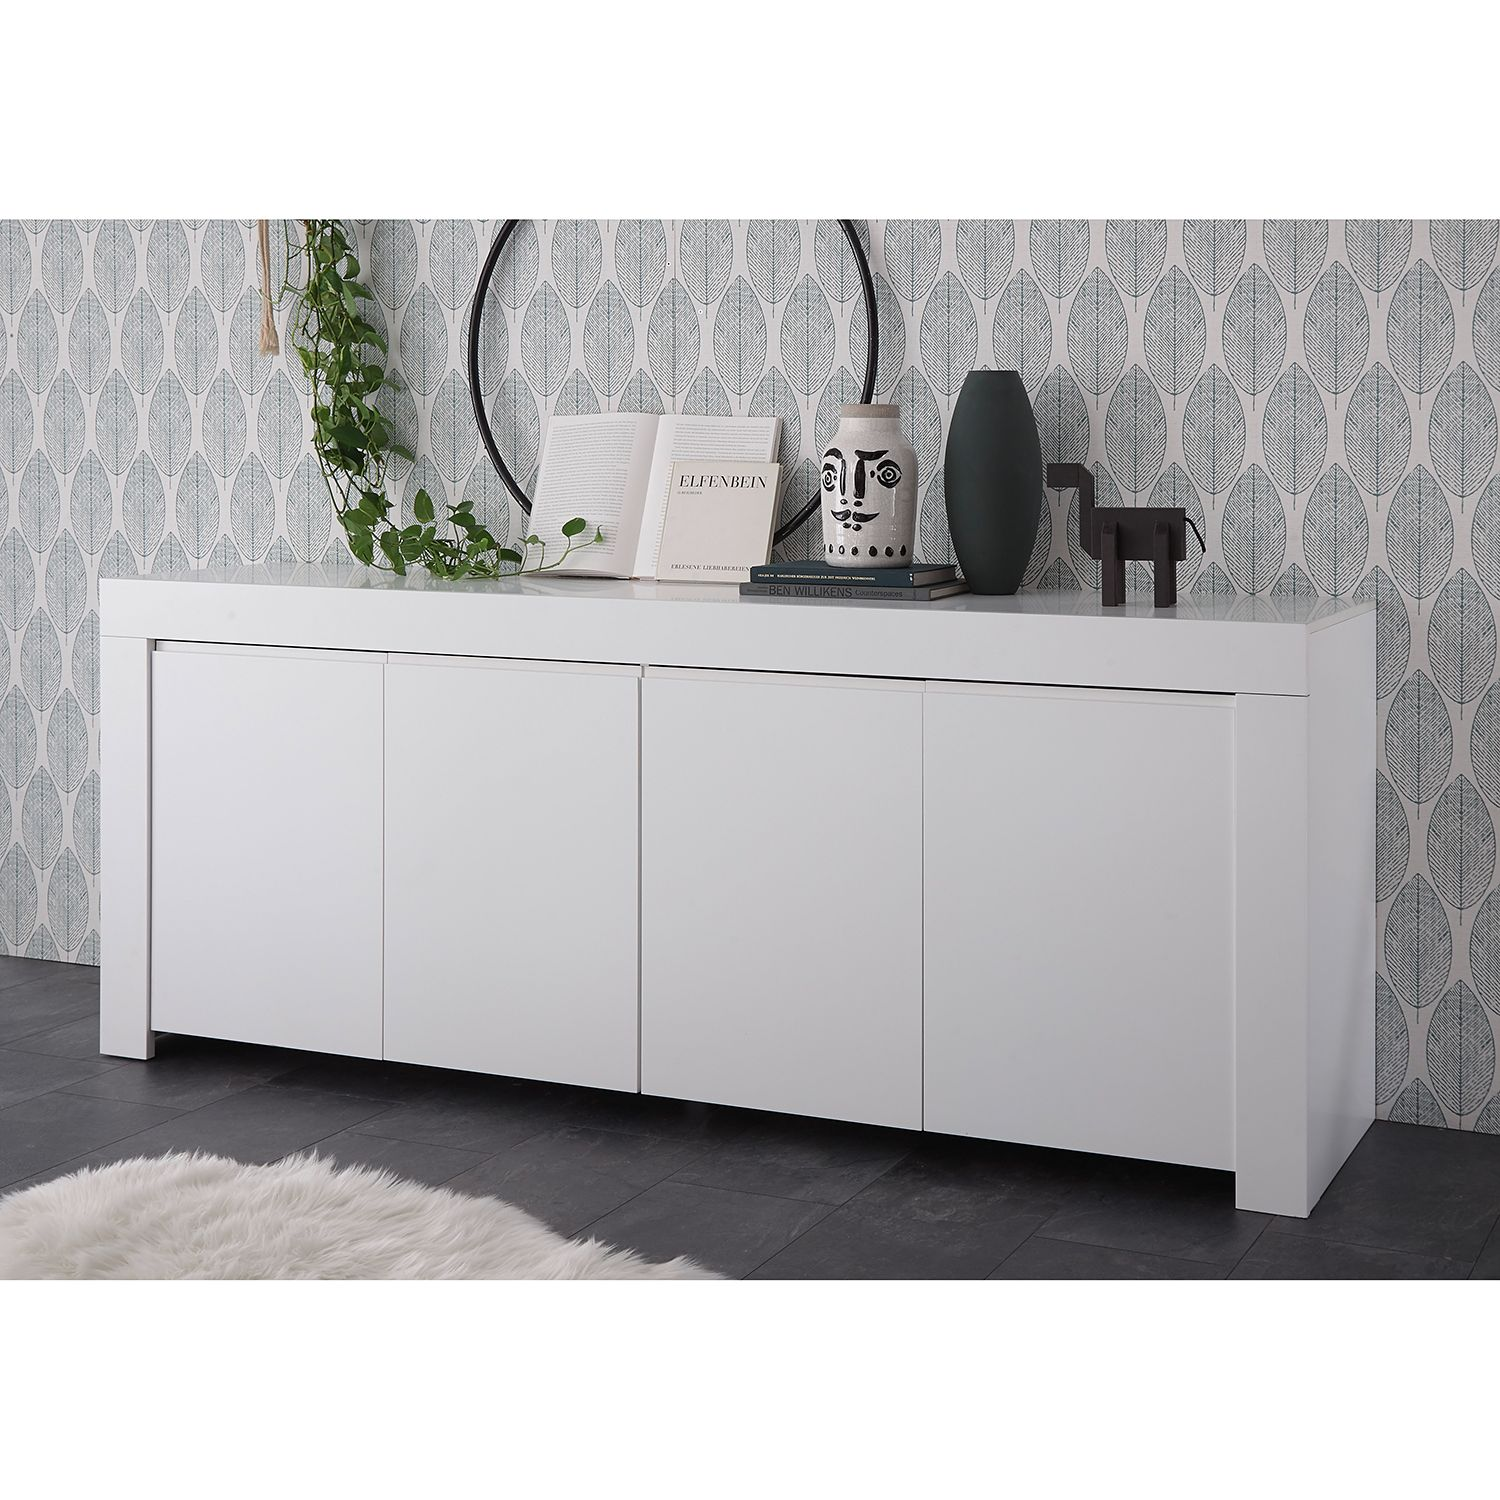 home24 Sideboard Firenze III